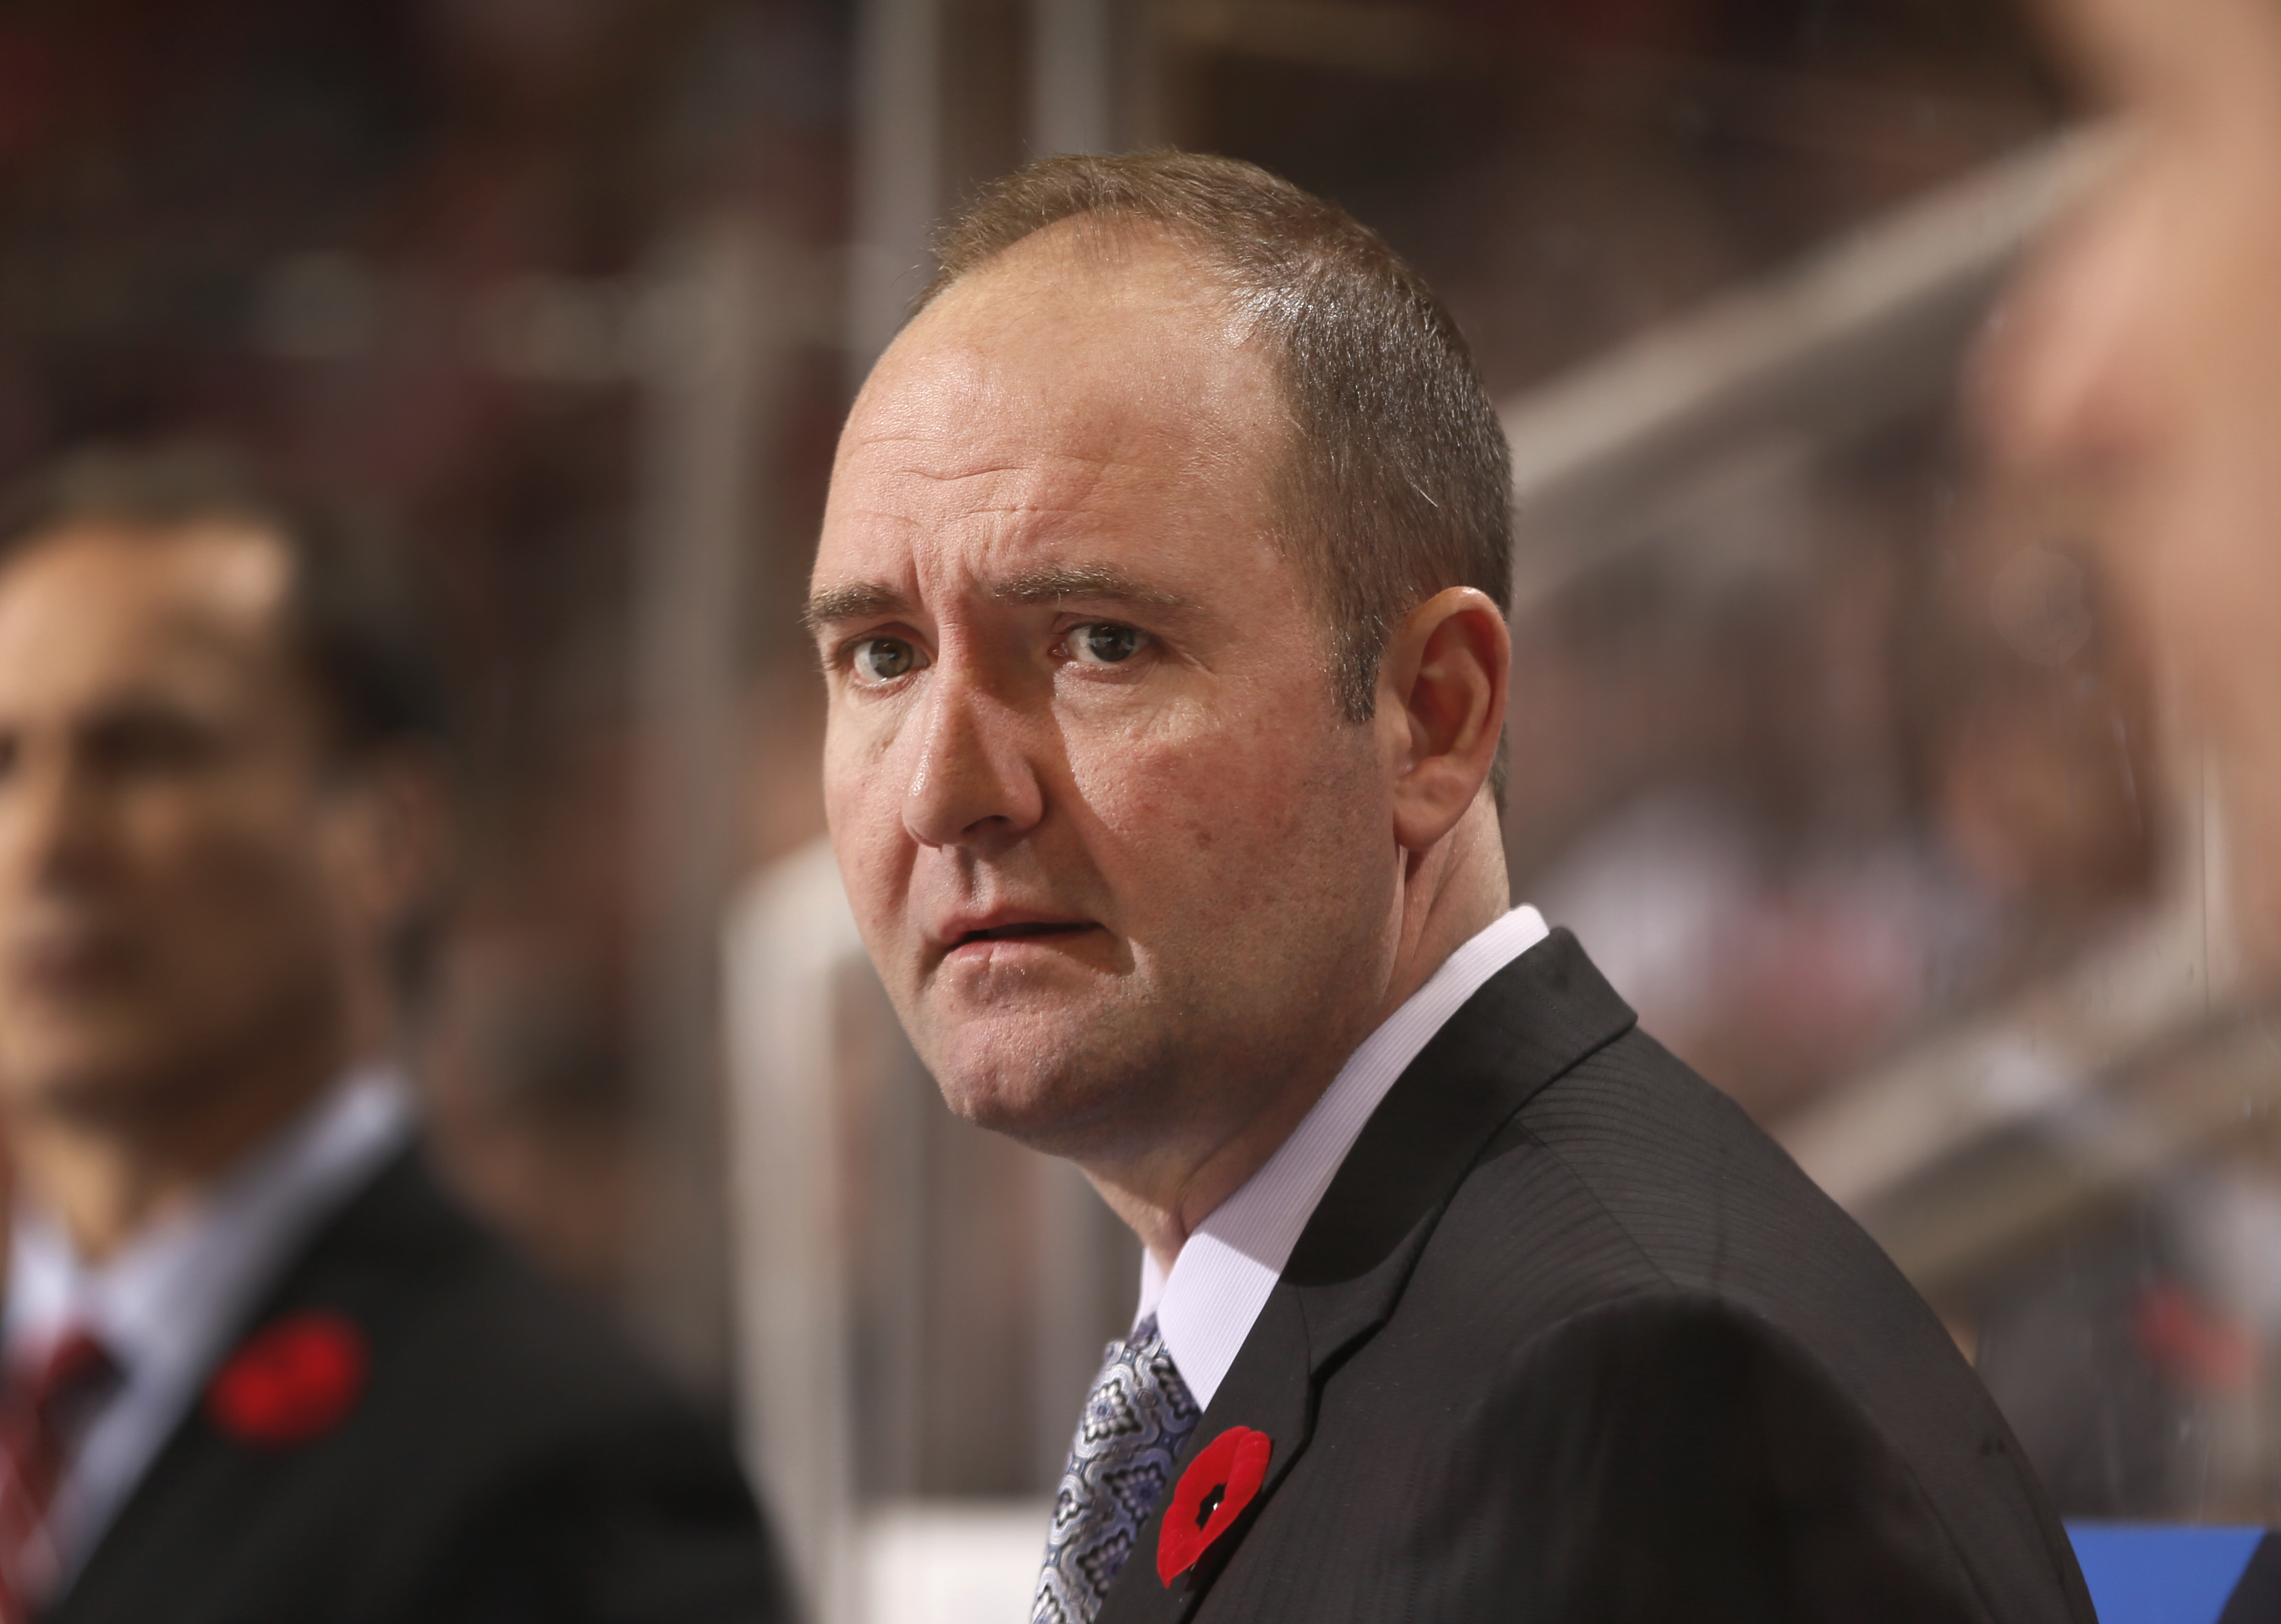 FILE - In this Nov. 7, 2014, file photo, then-New Jersey Devils head coach Peter DeBoer watches the second period of an NHL hockey game against the Detroit Red Wings in Detroit. The San Jose Sharks will hire Peter DeBoer as their new head coach.  A person